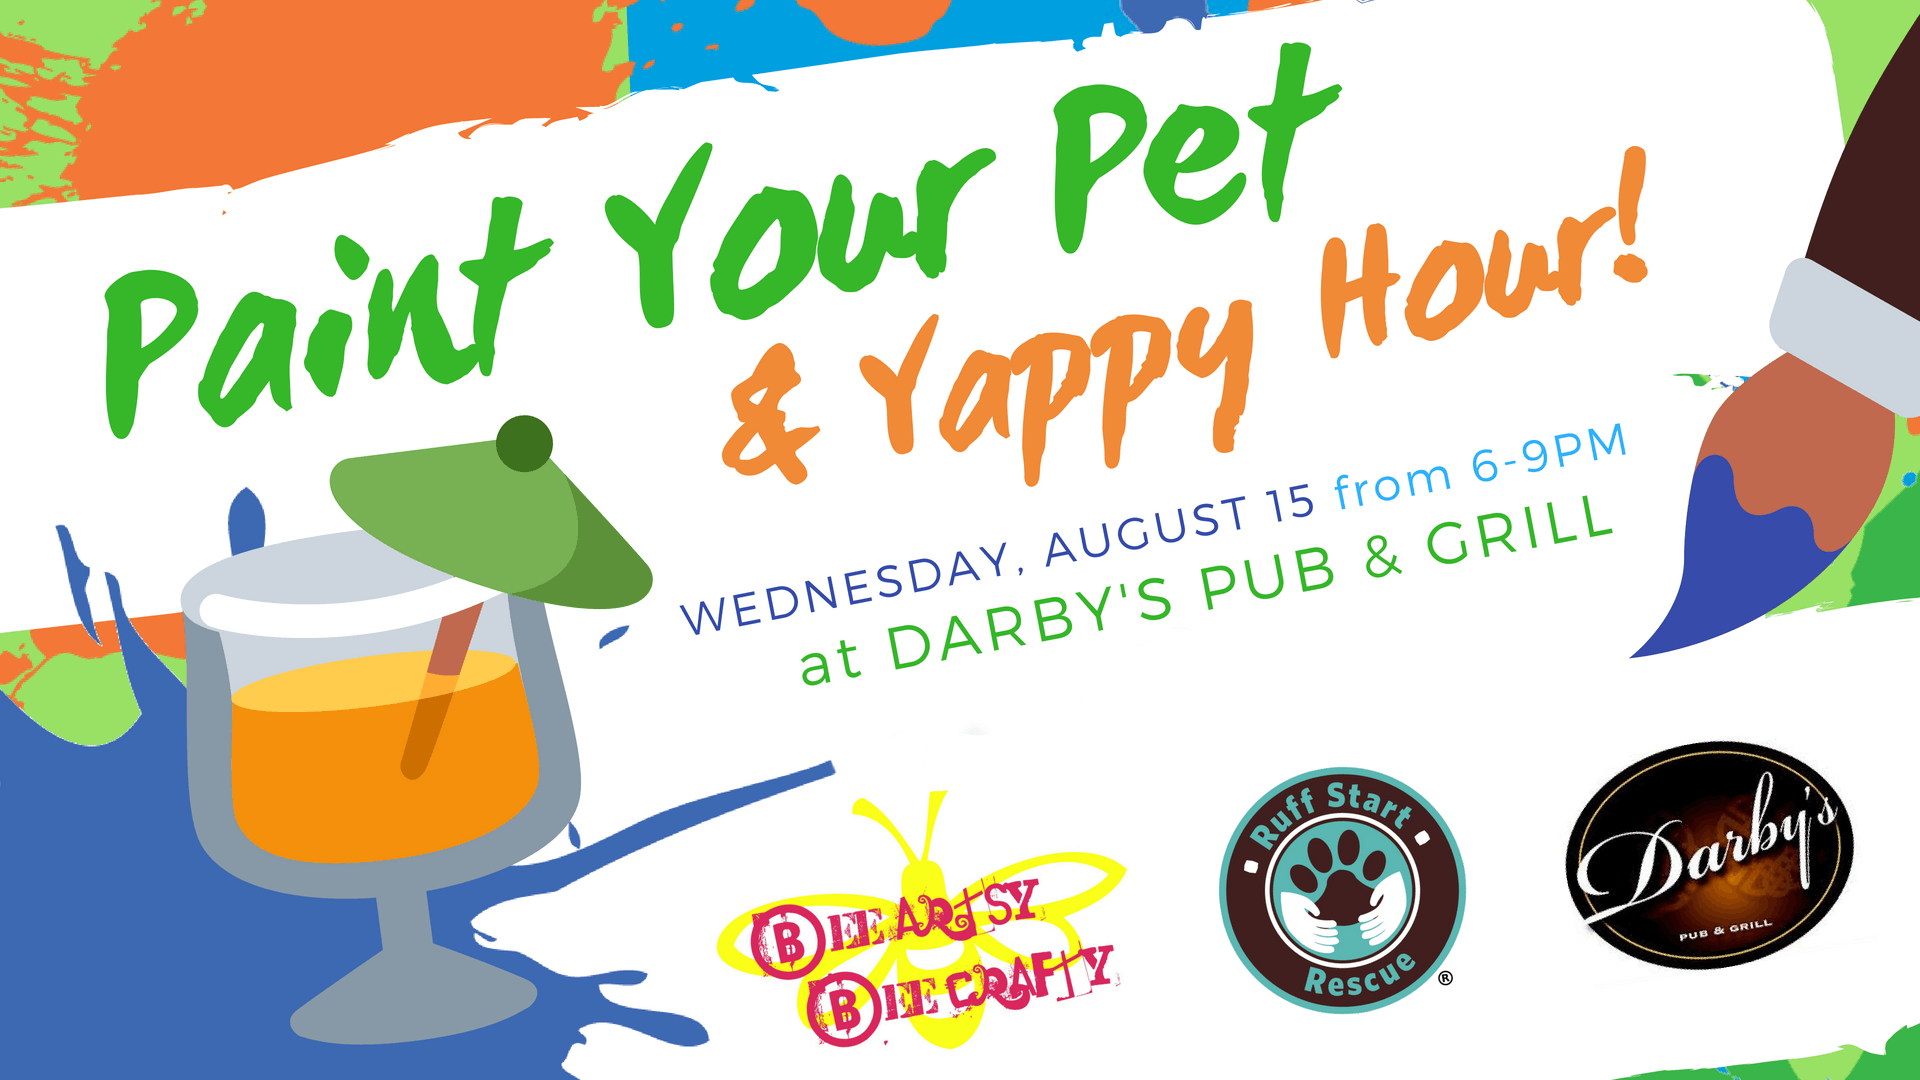 Paint Your Pet & Yappy Hour